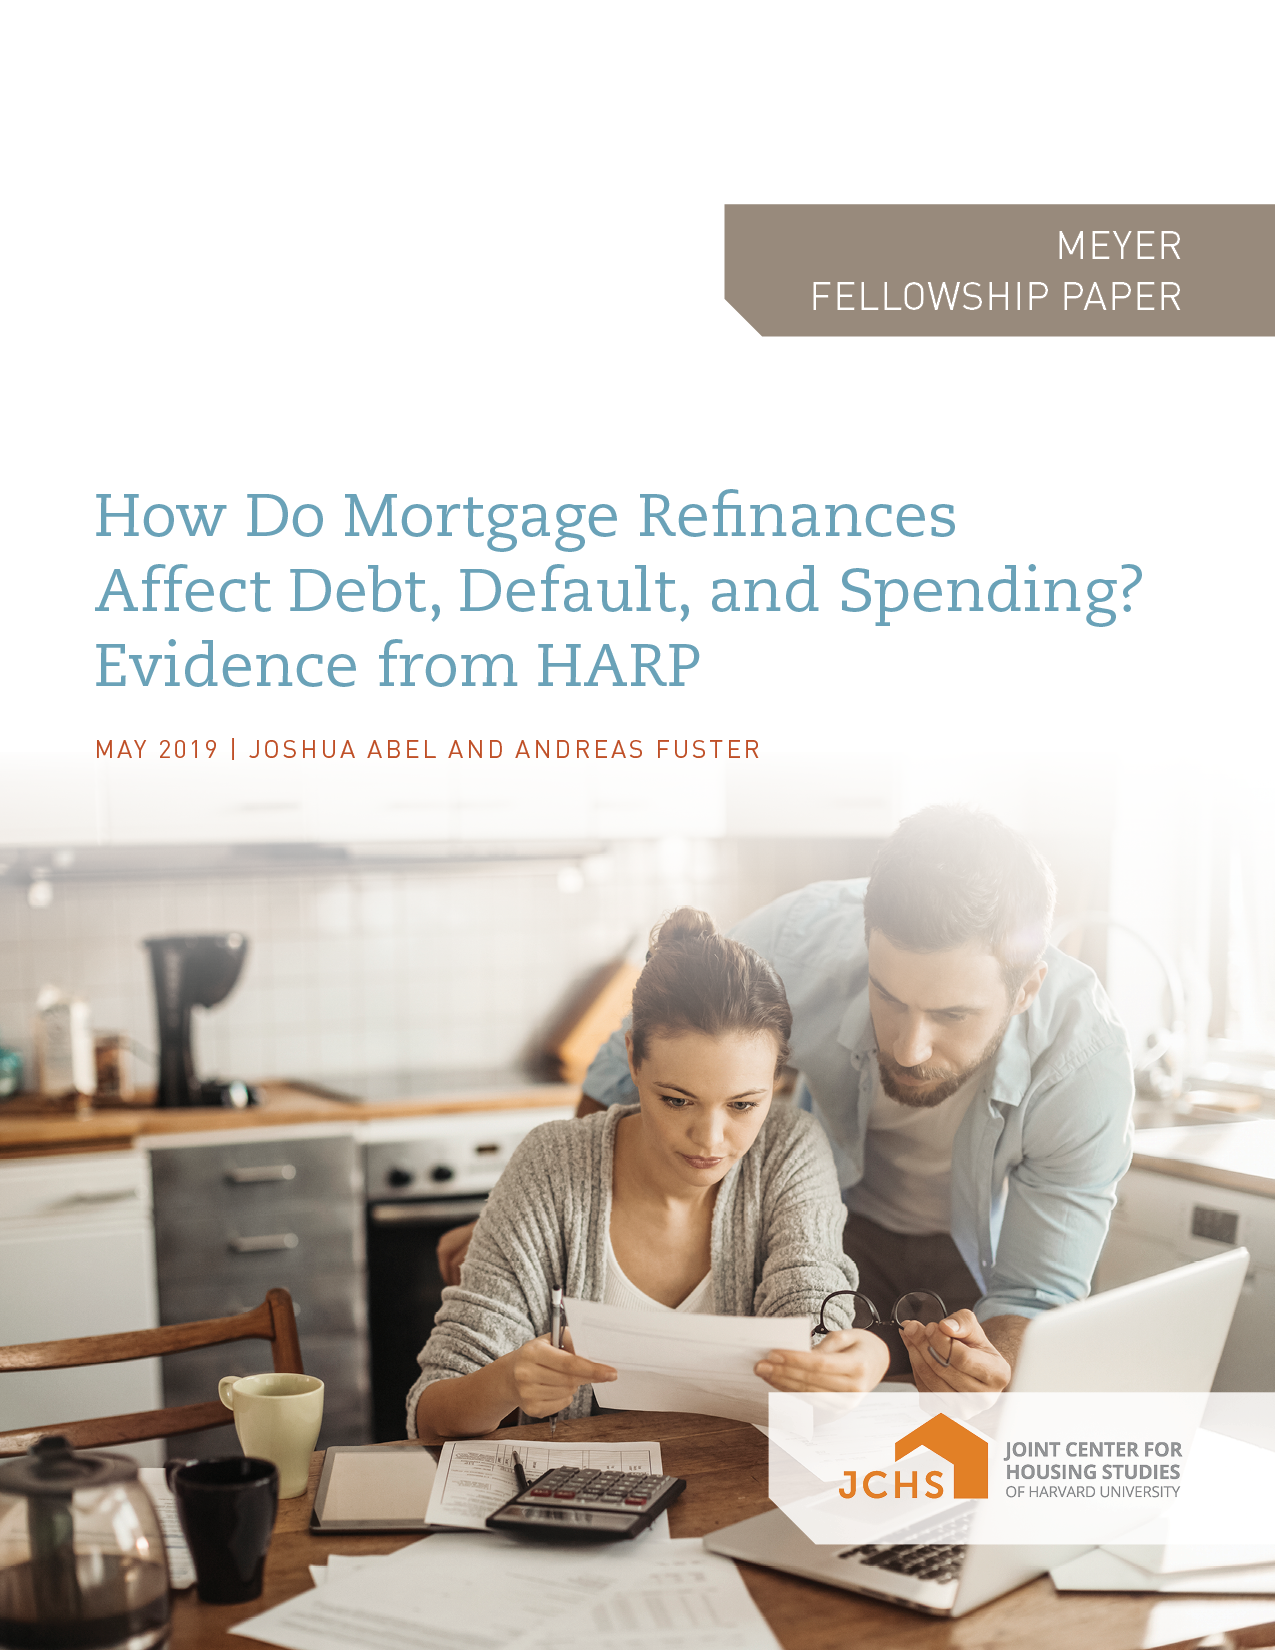 How Do Mortgage Refinances Affect Debt, Default, and Spending? Evidence from HARP